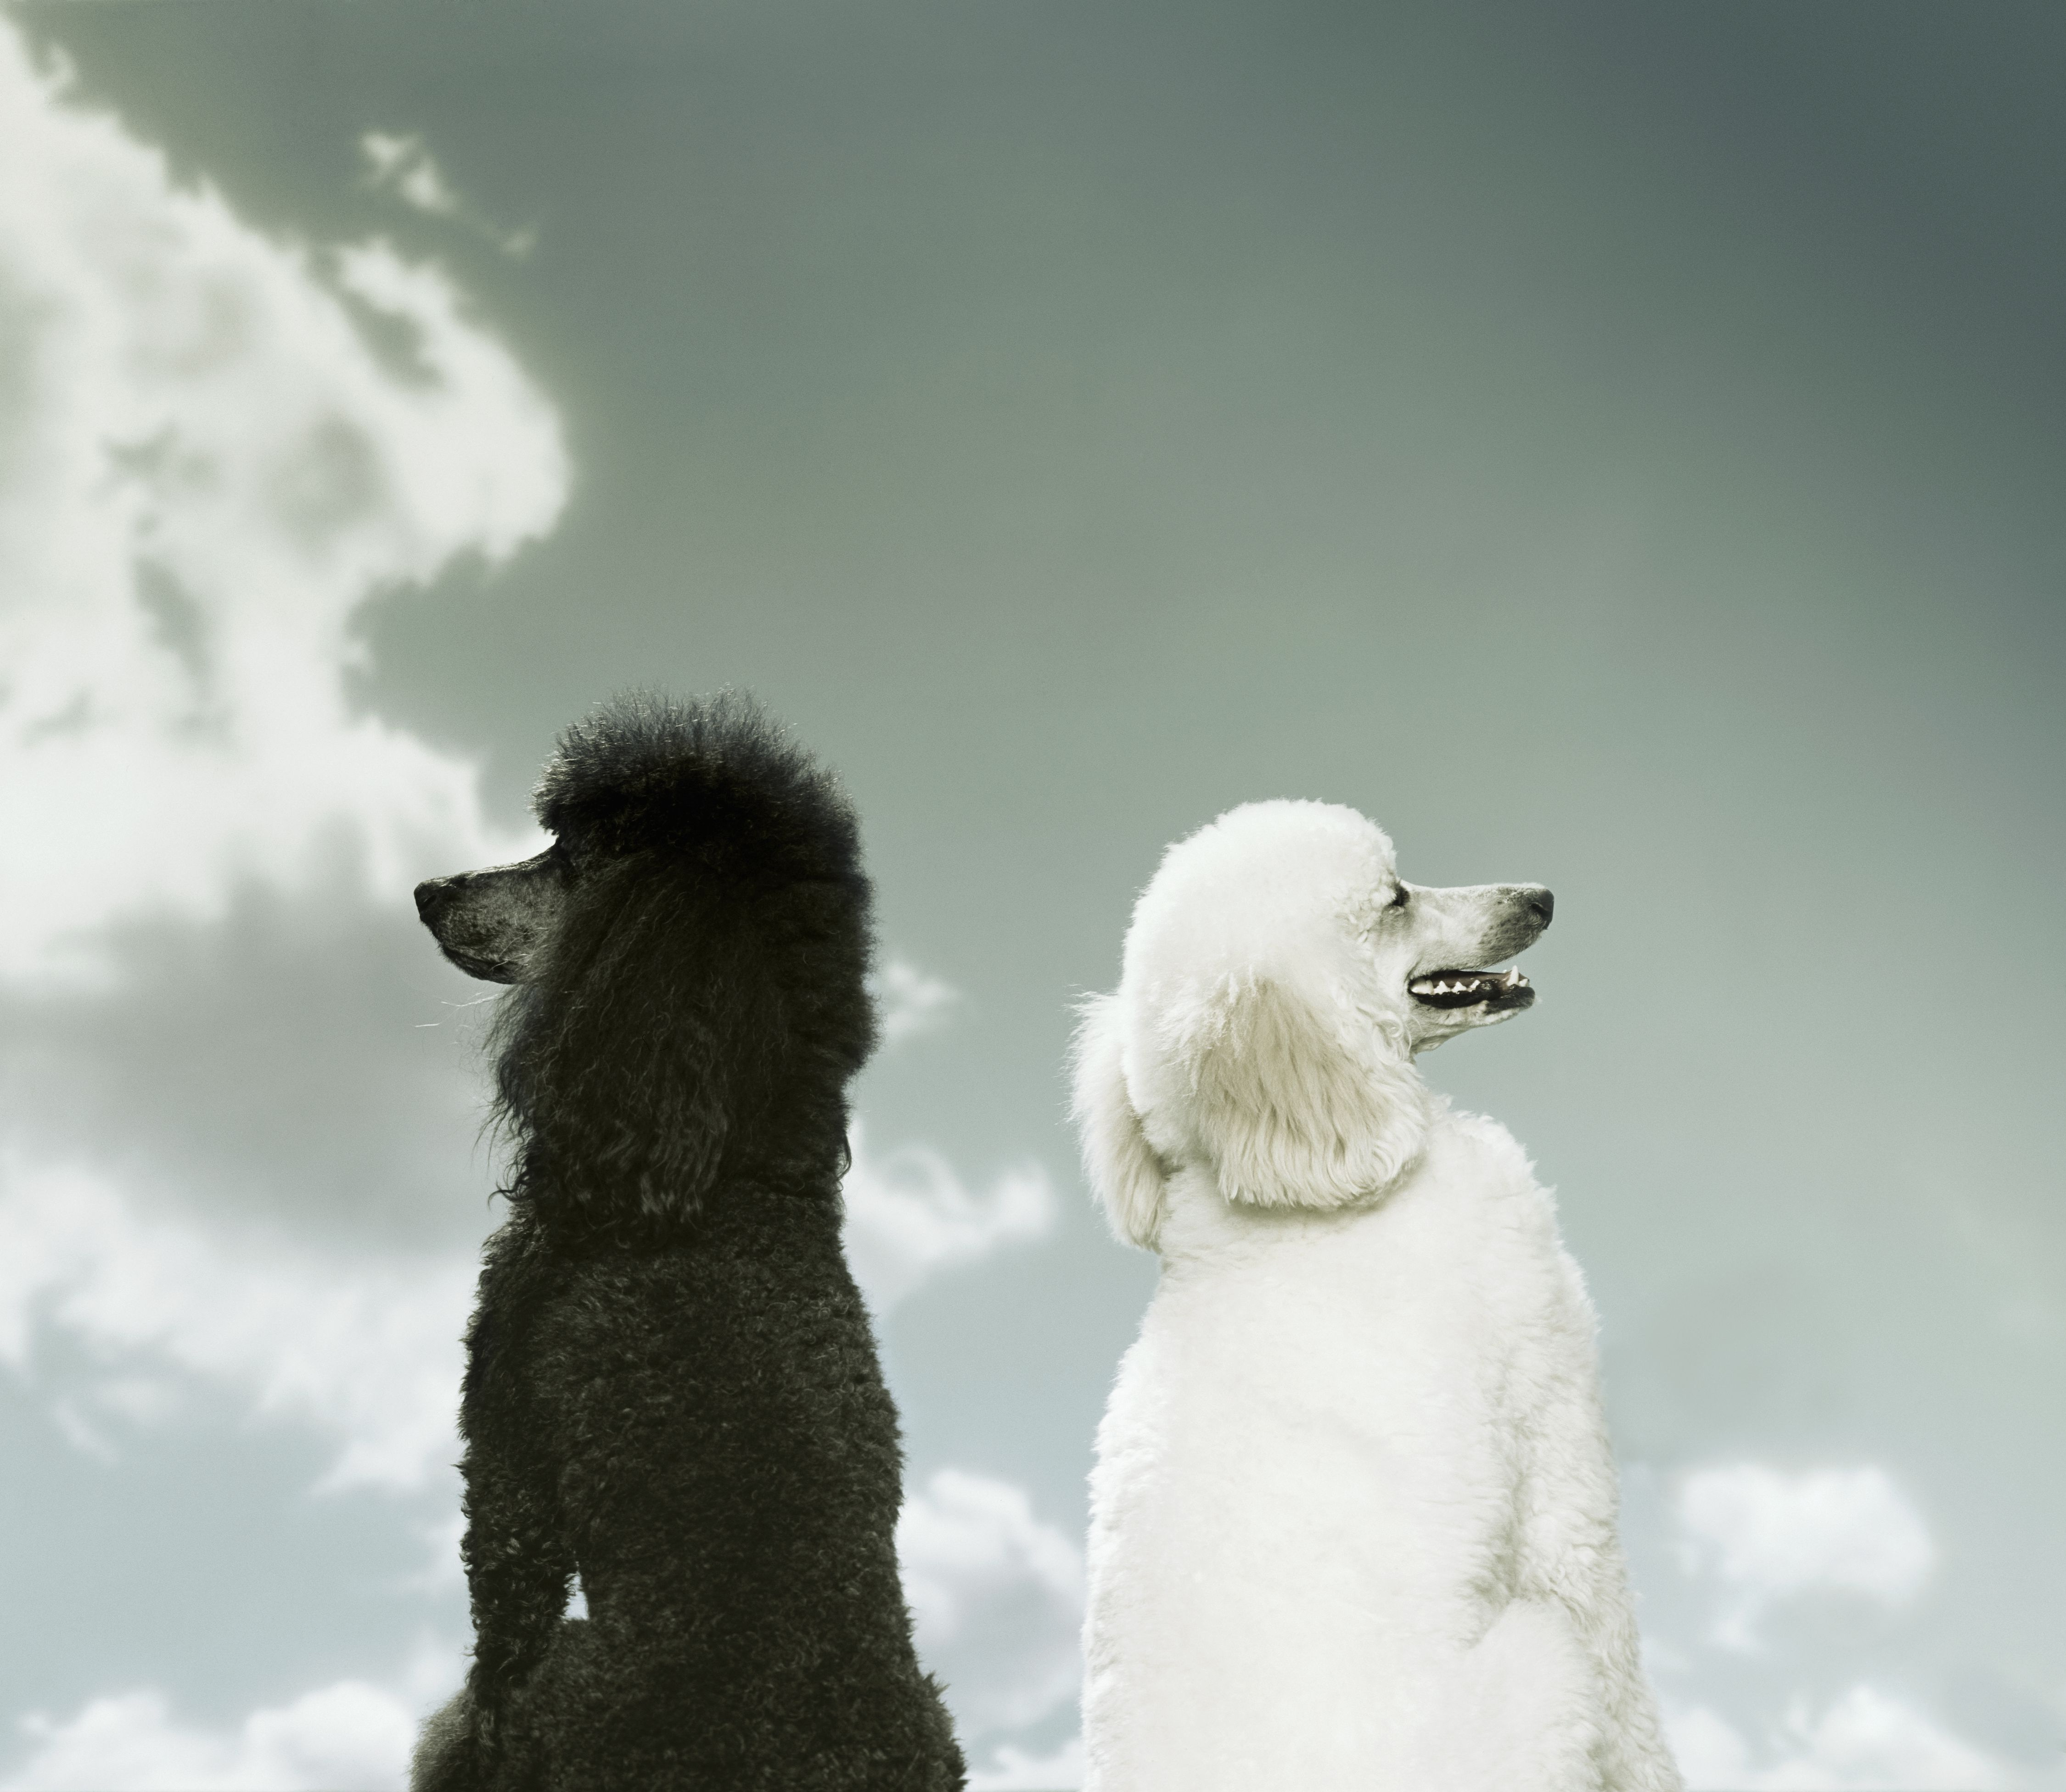 Black and White Poodles Facing Opposite Directions